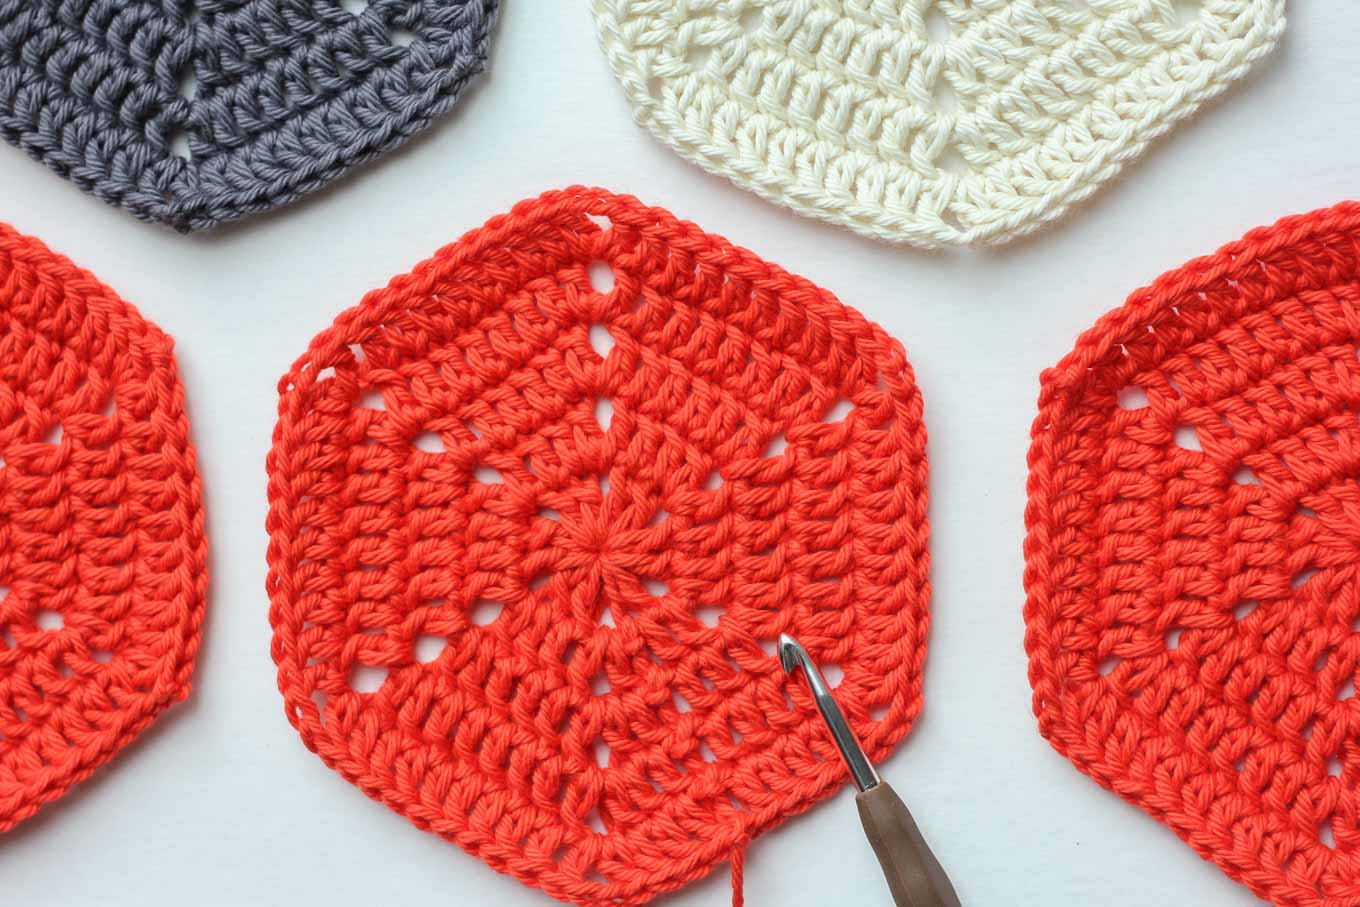 Basic Crochet Patterns New Basic Crochet Hexagon Pattern Tips and Clear S Of Amazing 47 Ideas Basic Crochet Patterns